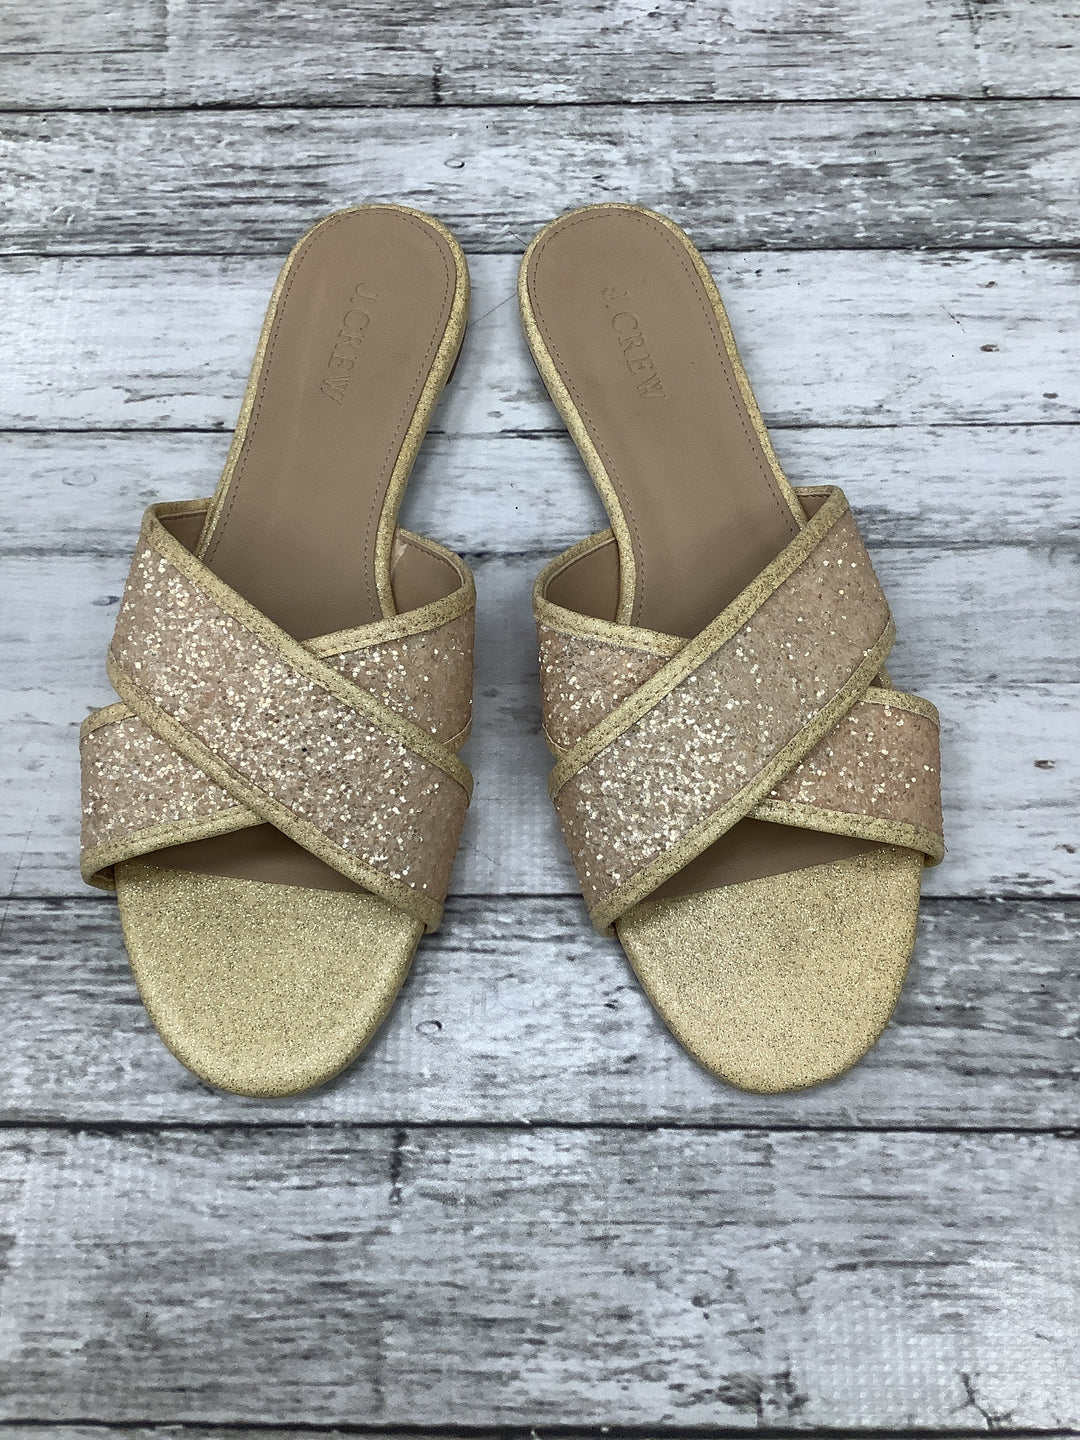 Primary Photo - brand: j crew o , style: sandals , color: yellow , size: 8.5 , sku: 105-4189-677